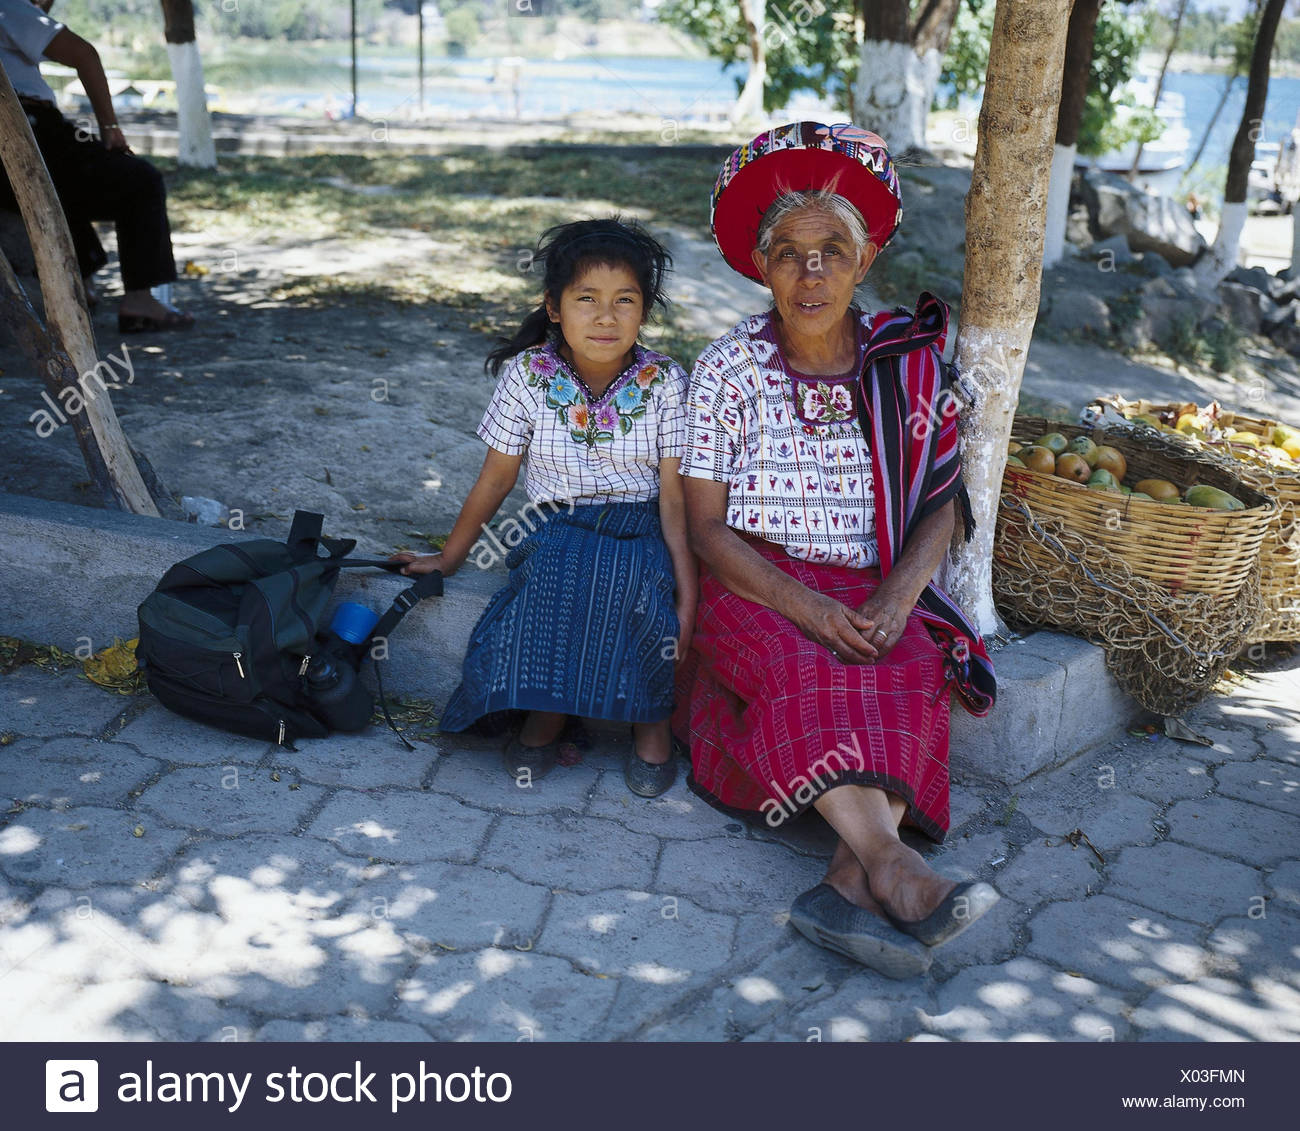 Guatemala, Atitlansee, Santiago, Atitlan, senior, girl, folklore clothes, no model release Latin America, highland region, Lago de Atitlan, locals, woman, child, granddaughter, folklore, clothes, tradition, culture, market, sales, fruits, economy, trade - Stock Image